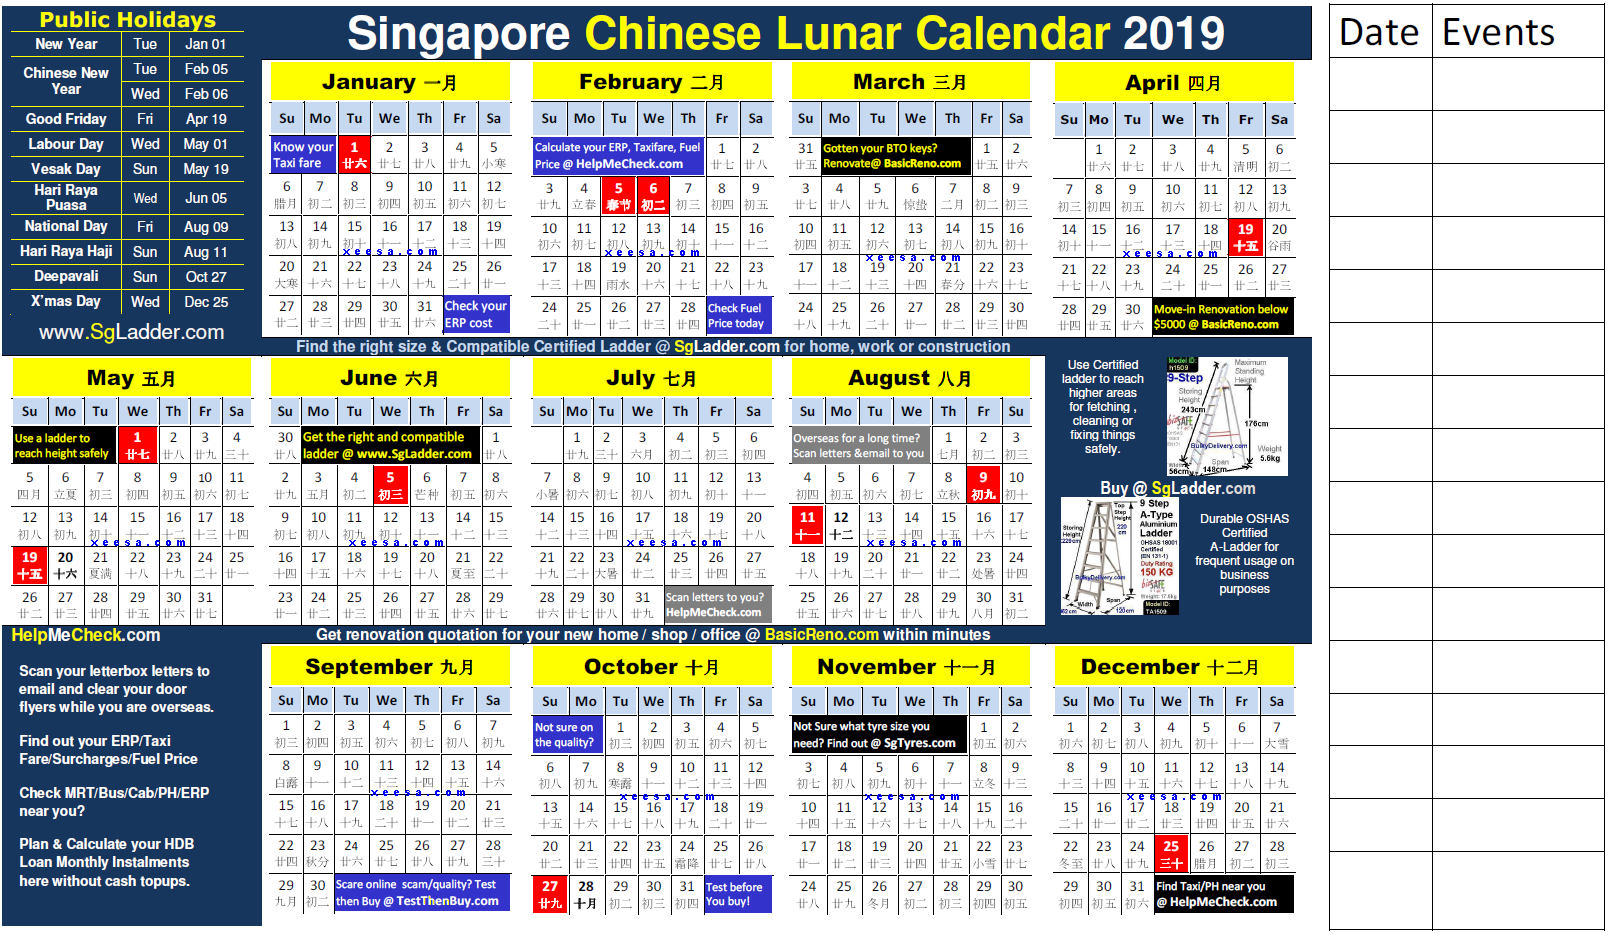 Year 2019 Lunar Calendar With Chinese Free For Singapore